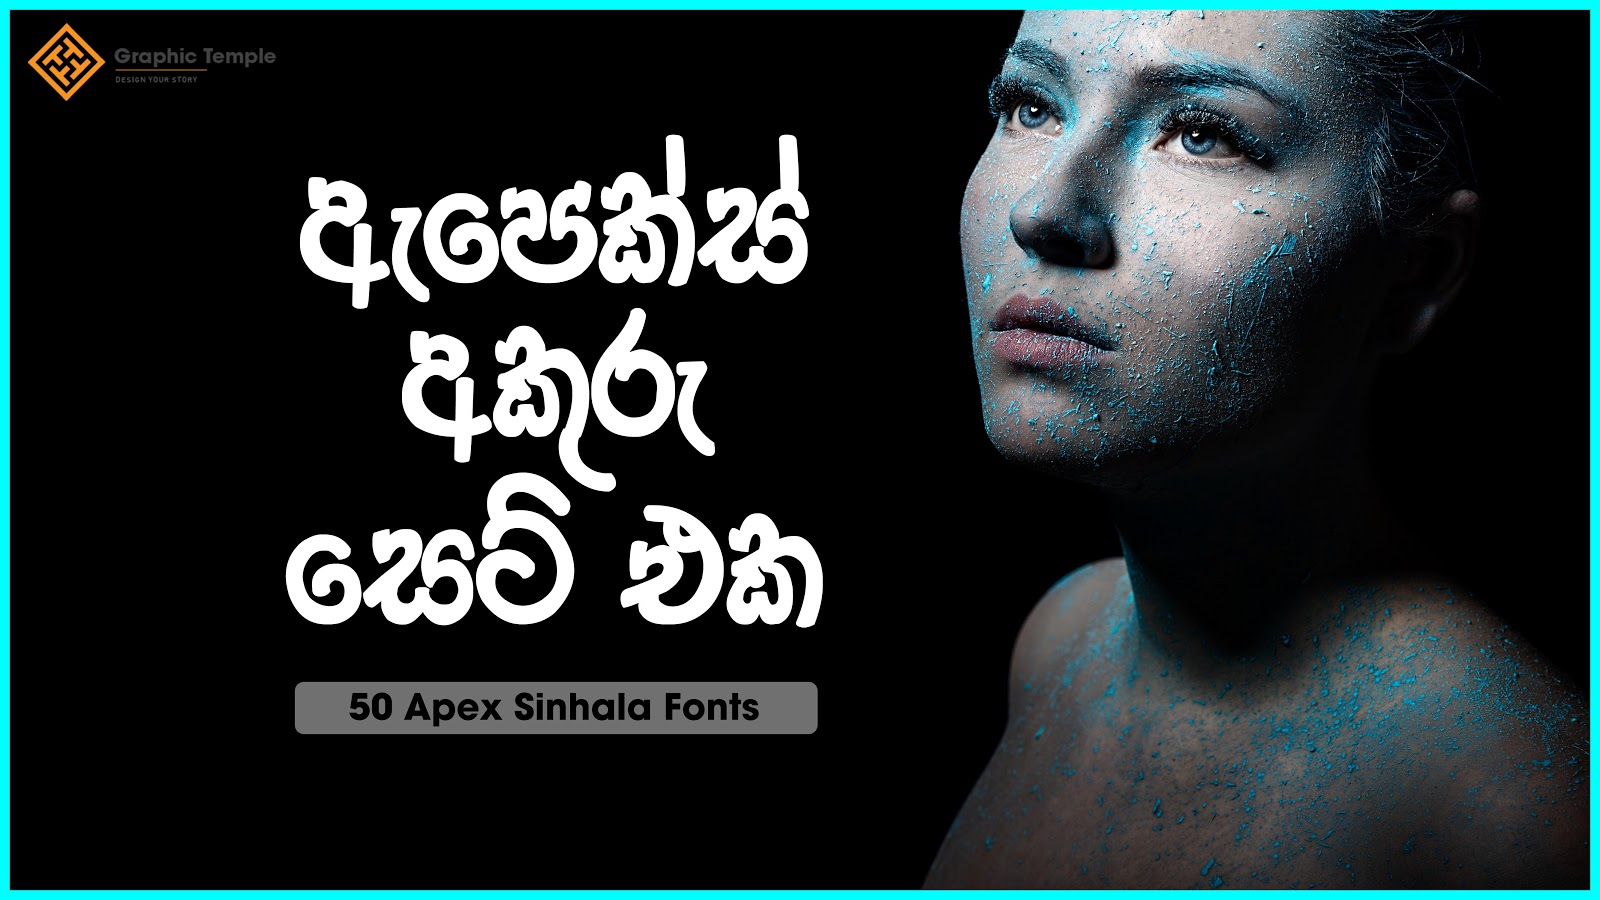 Download Apex - 50 Sinhala New Fonts - Graphic Temple